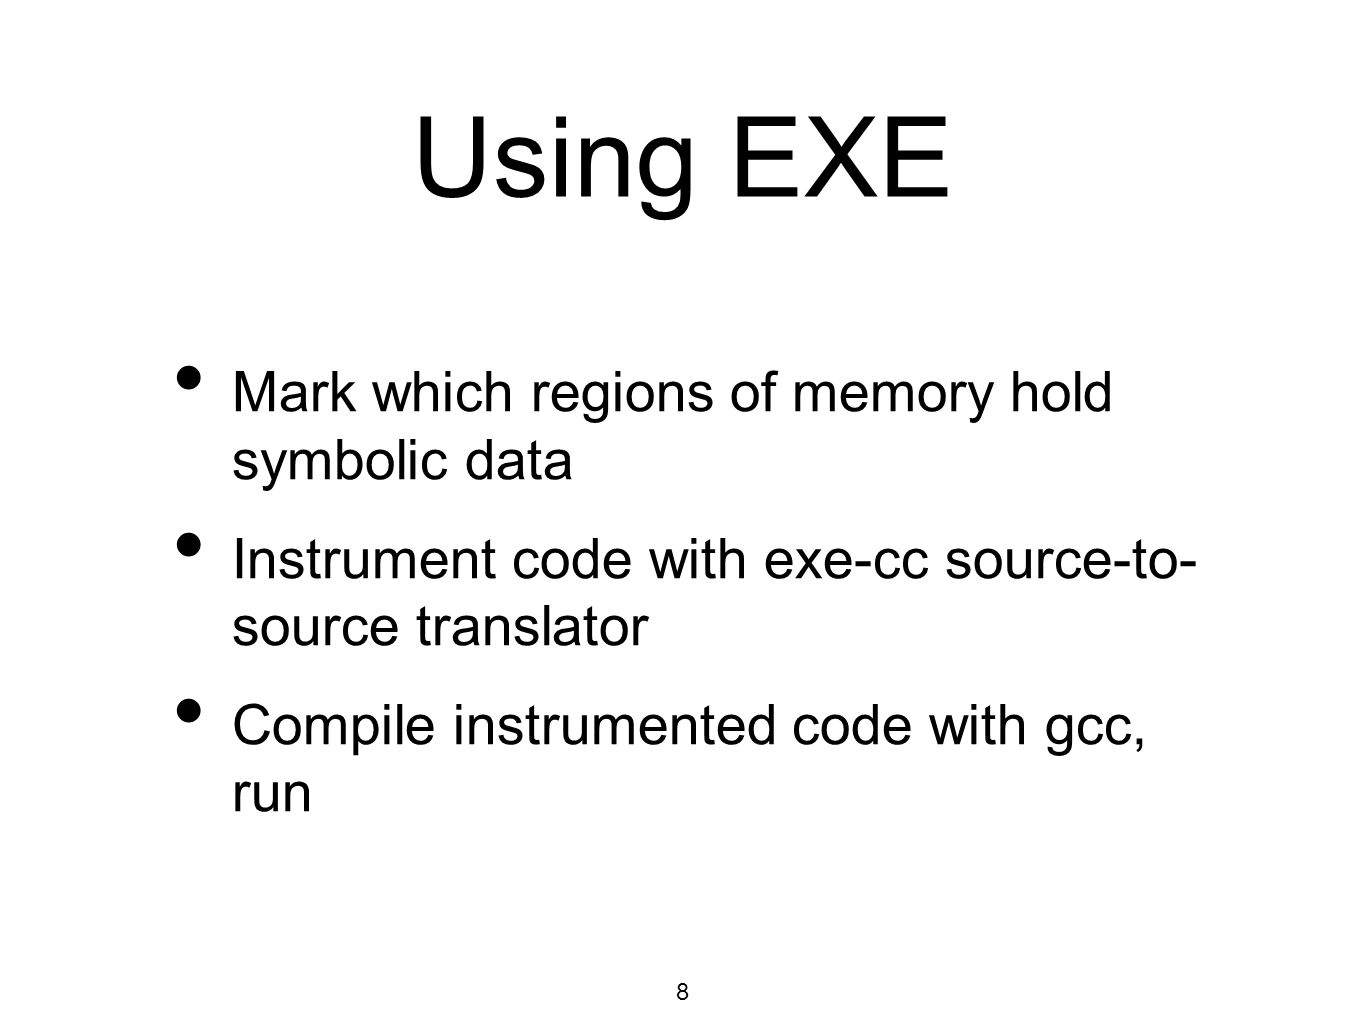 8 Using EXE Mark which regions of memory hold symbolic data Instrument code with exe-cc source-to- source translator Compile instrumented code with gcc, run